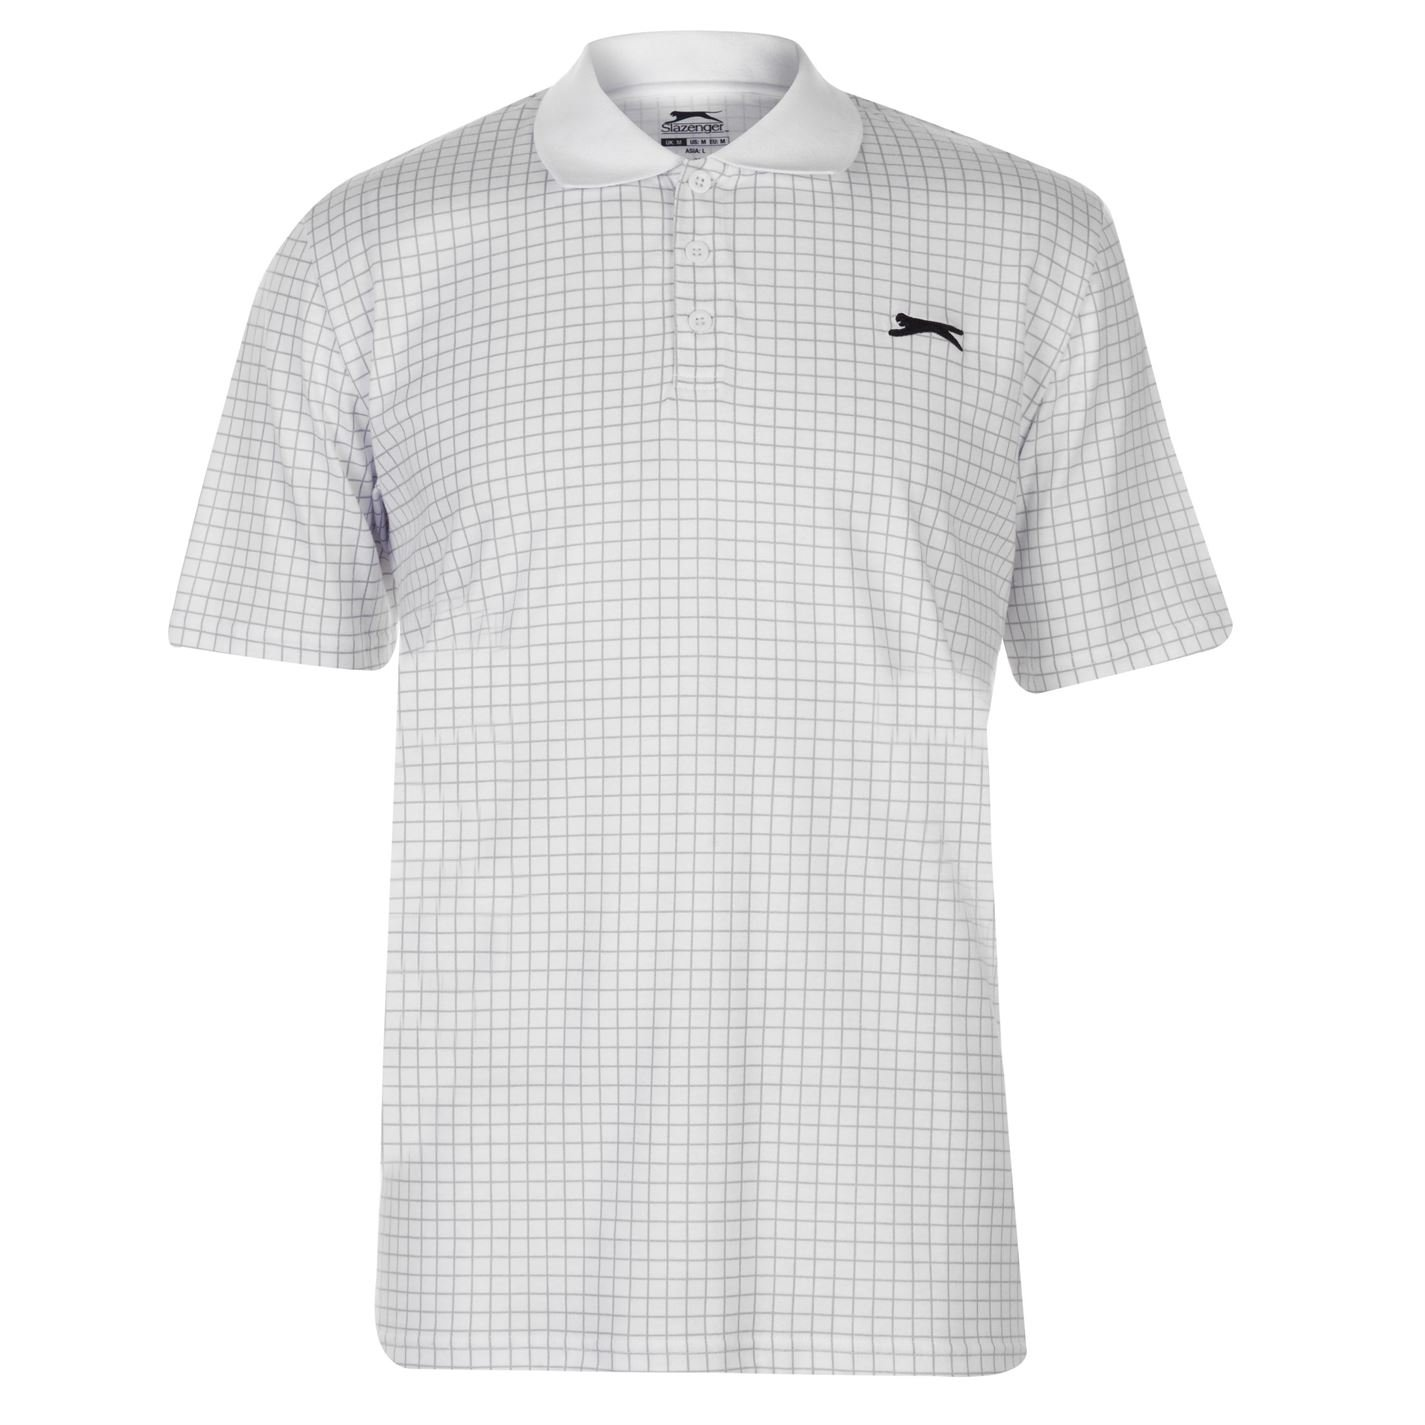 Slazenger Hombre Check Golf Camiseta Polo Manga Corta: Amazon.es ...